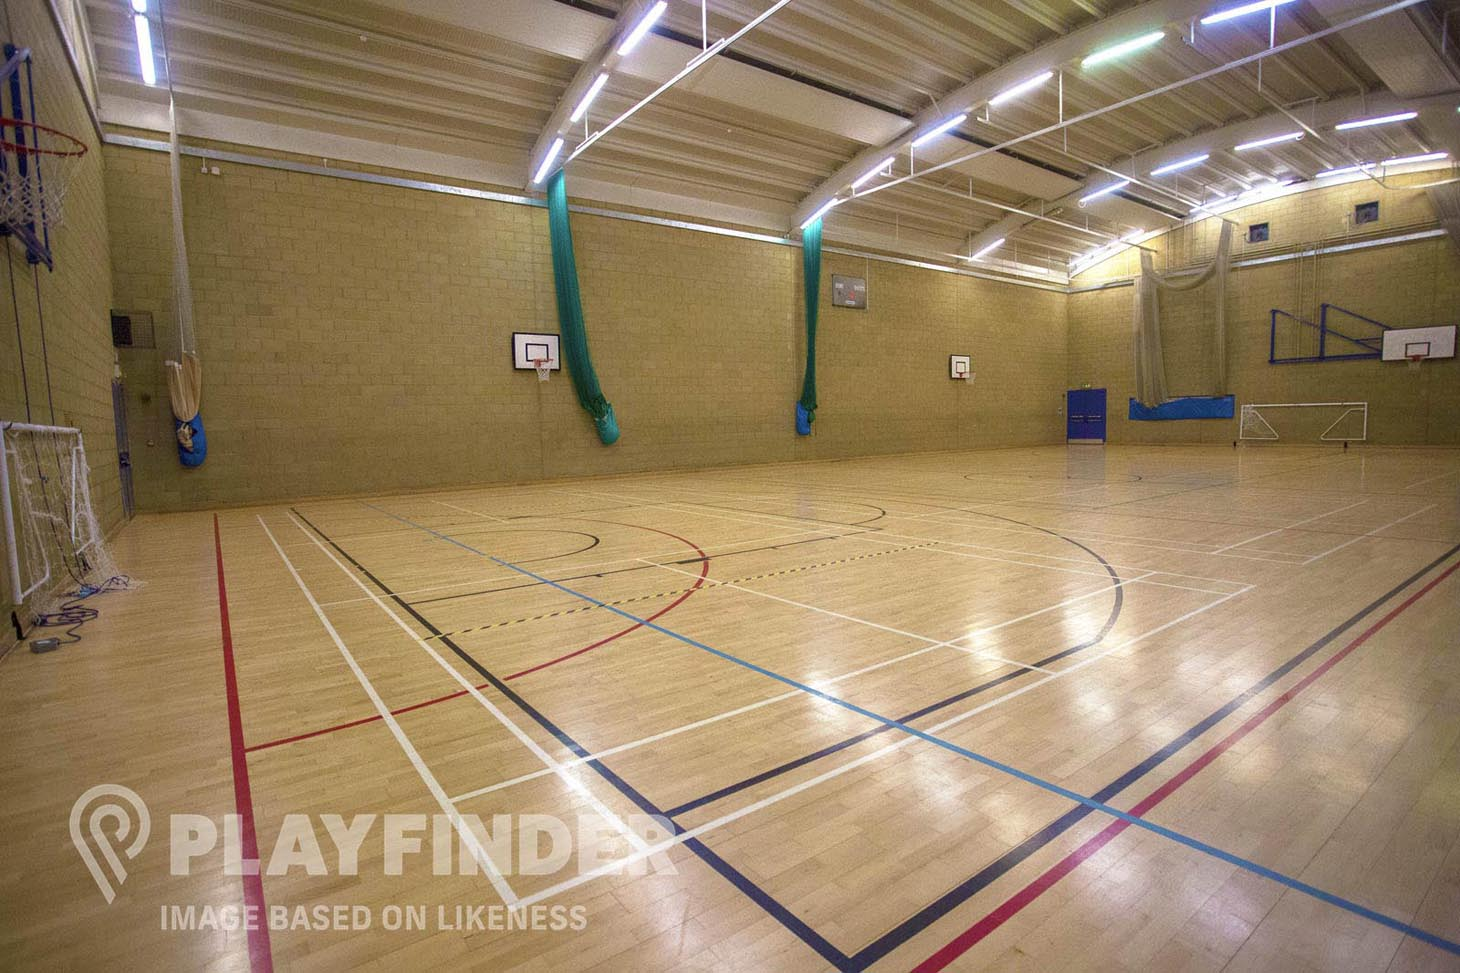 Herschel Sports Sports hall space hire